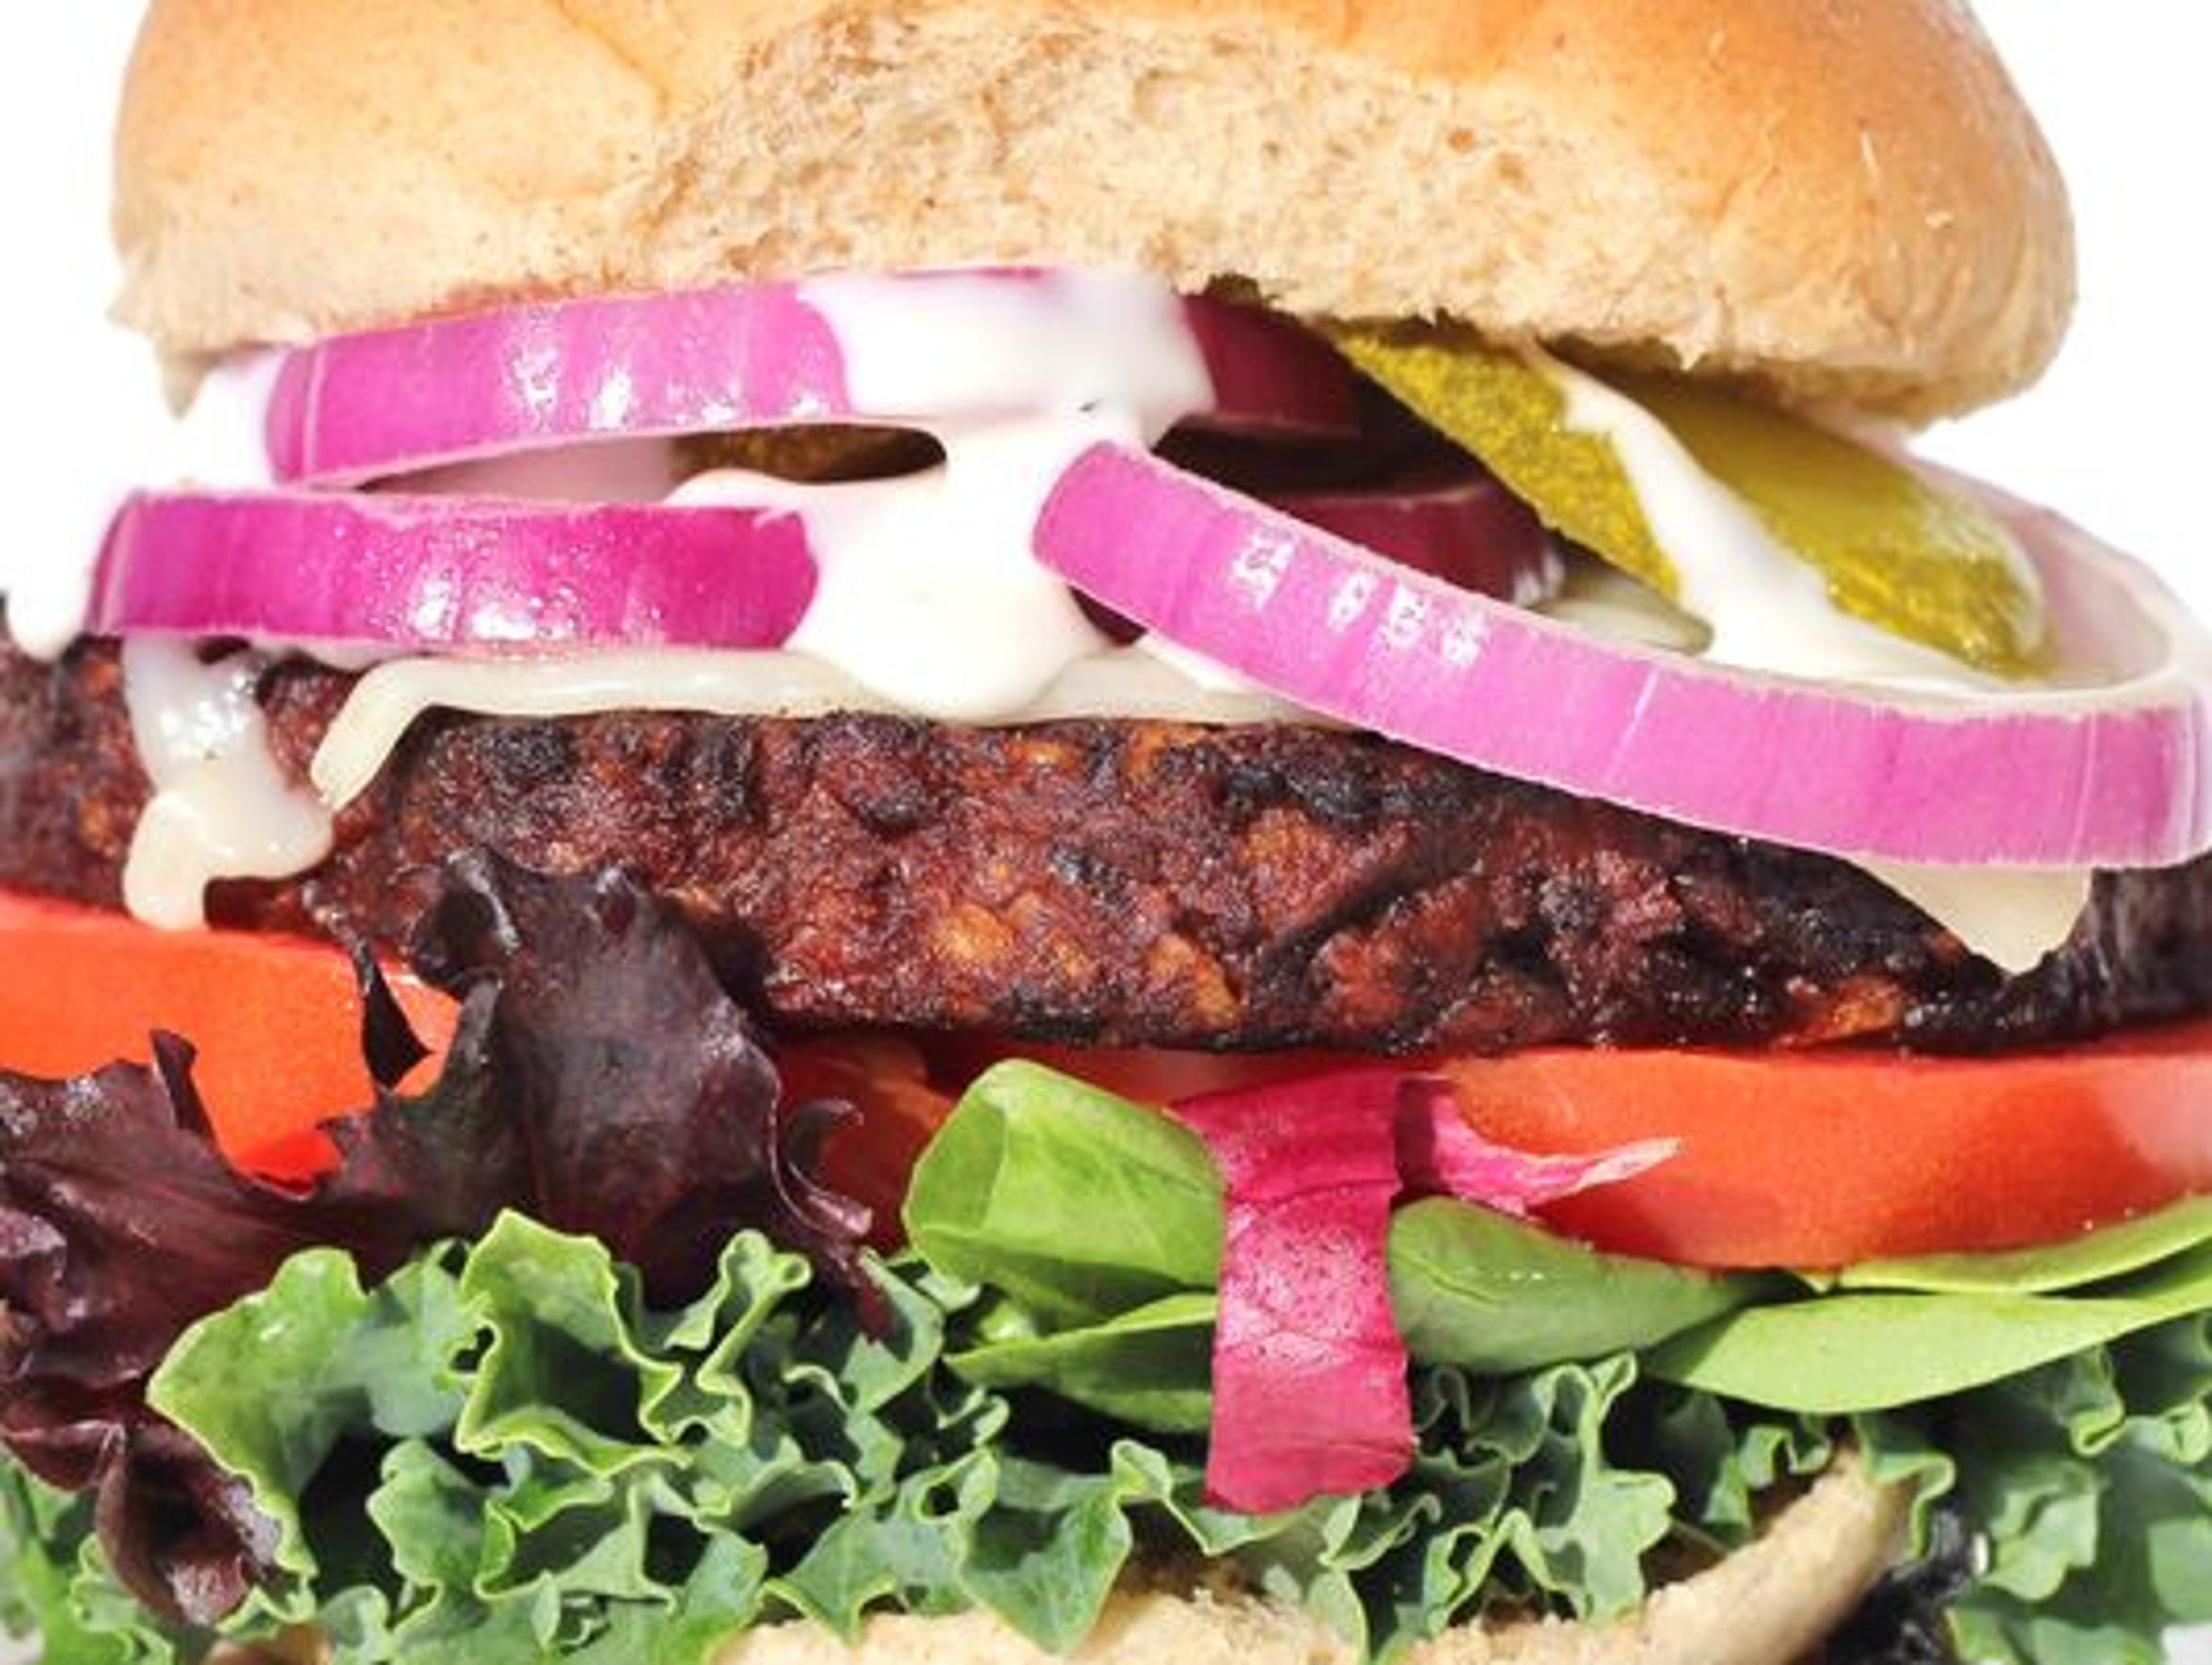 The Chipotle Black Bean Burger, made from scratch at